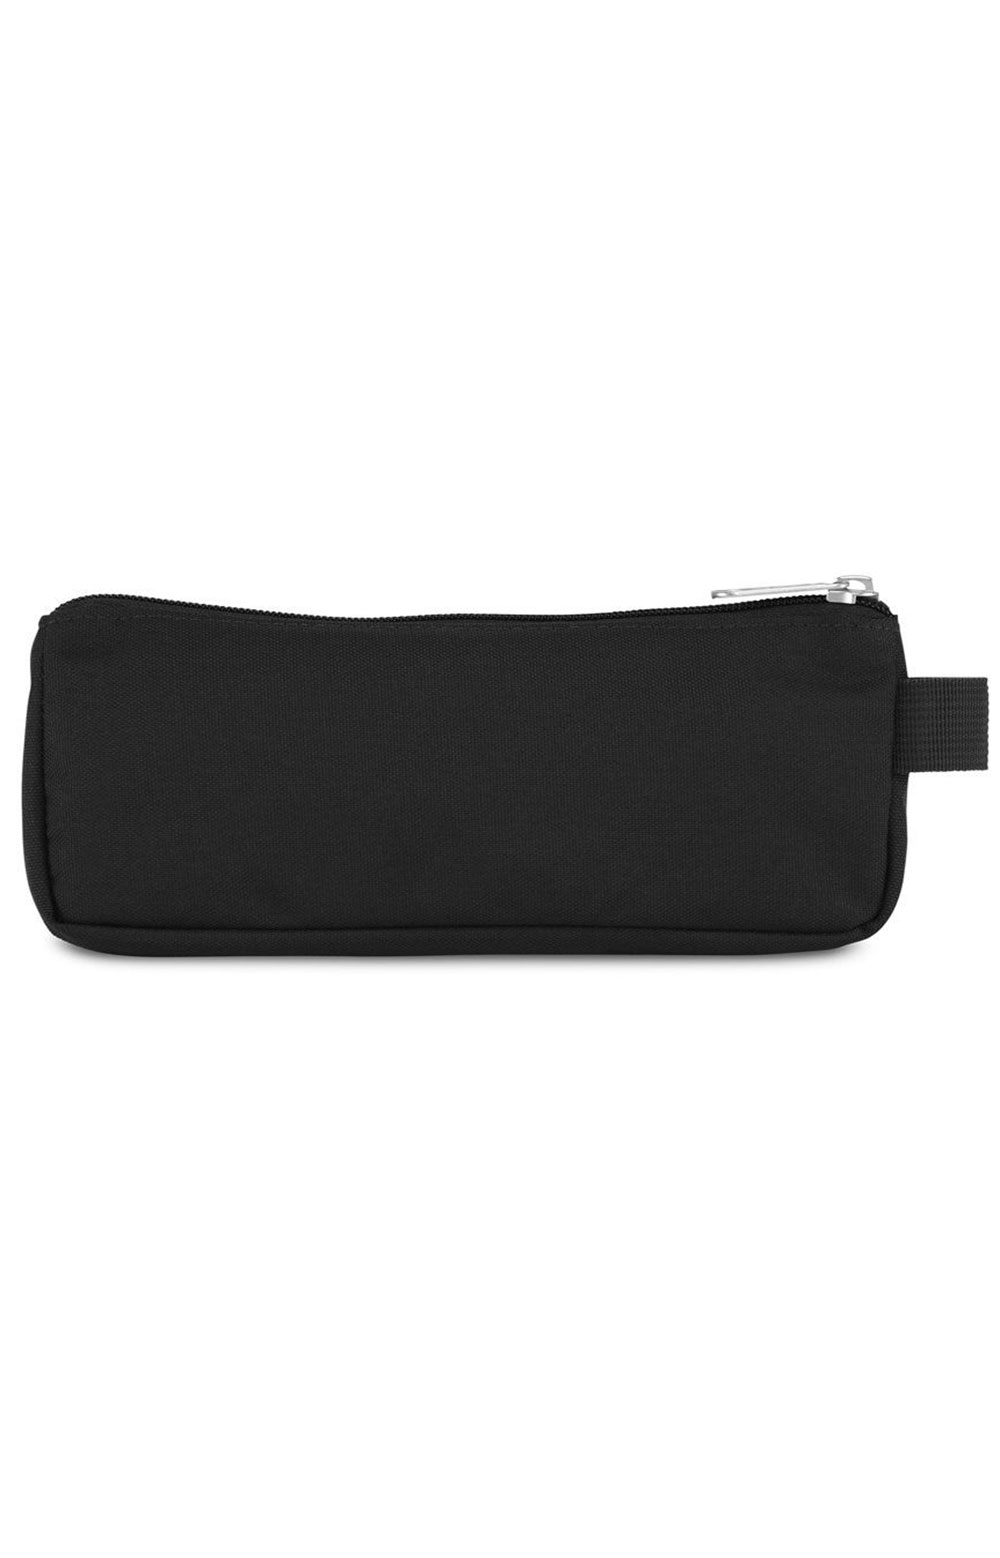 Basic Accessory Pouch - Black 3